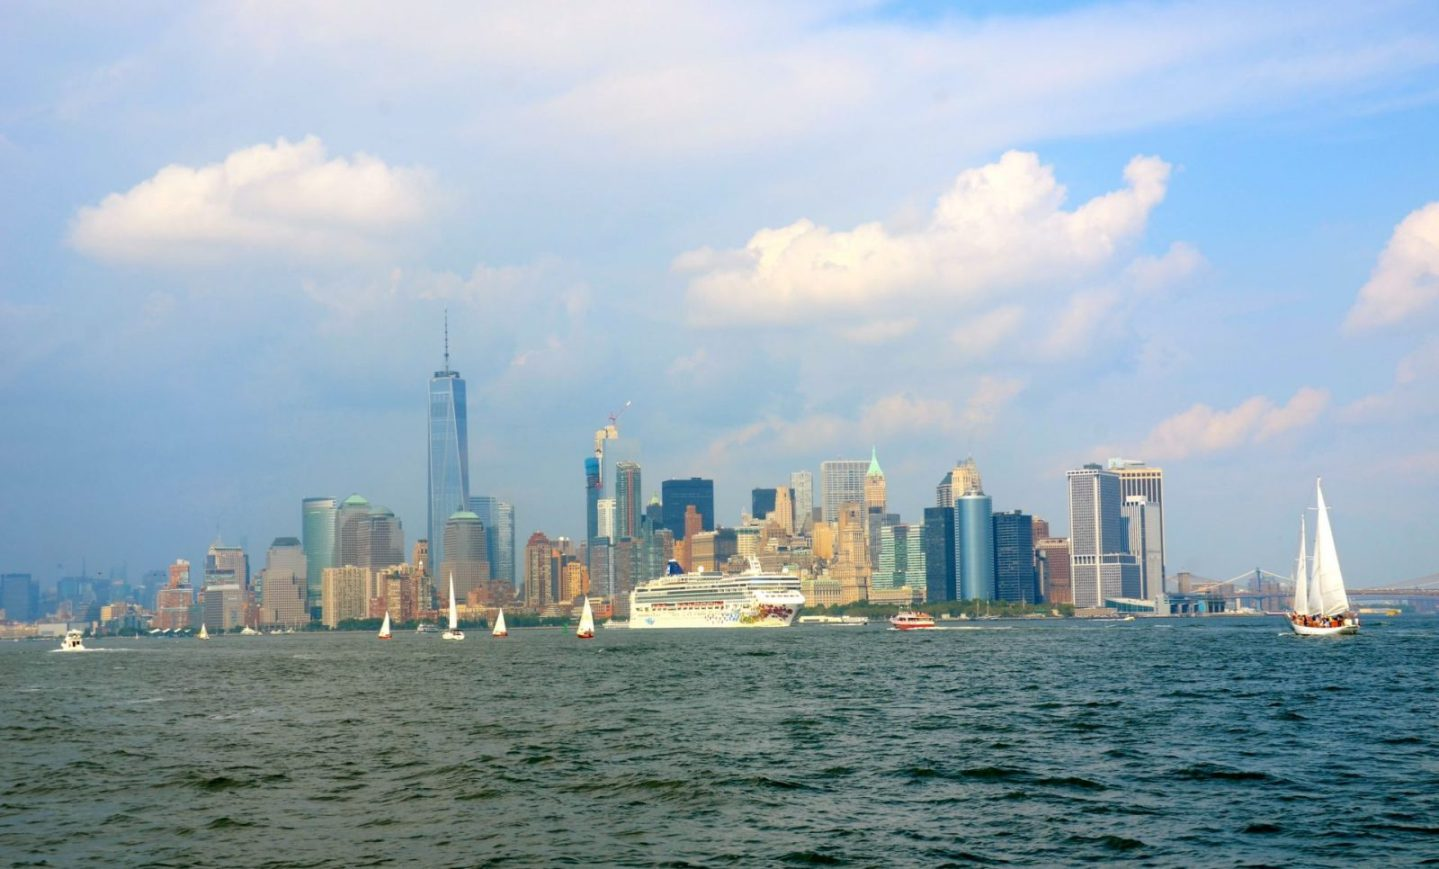 New York Water Taxi: Best Way to See the City!